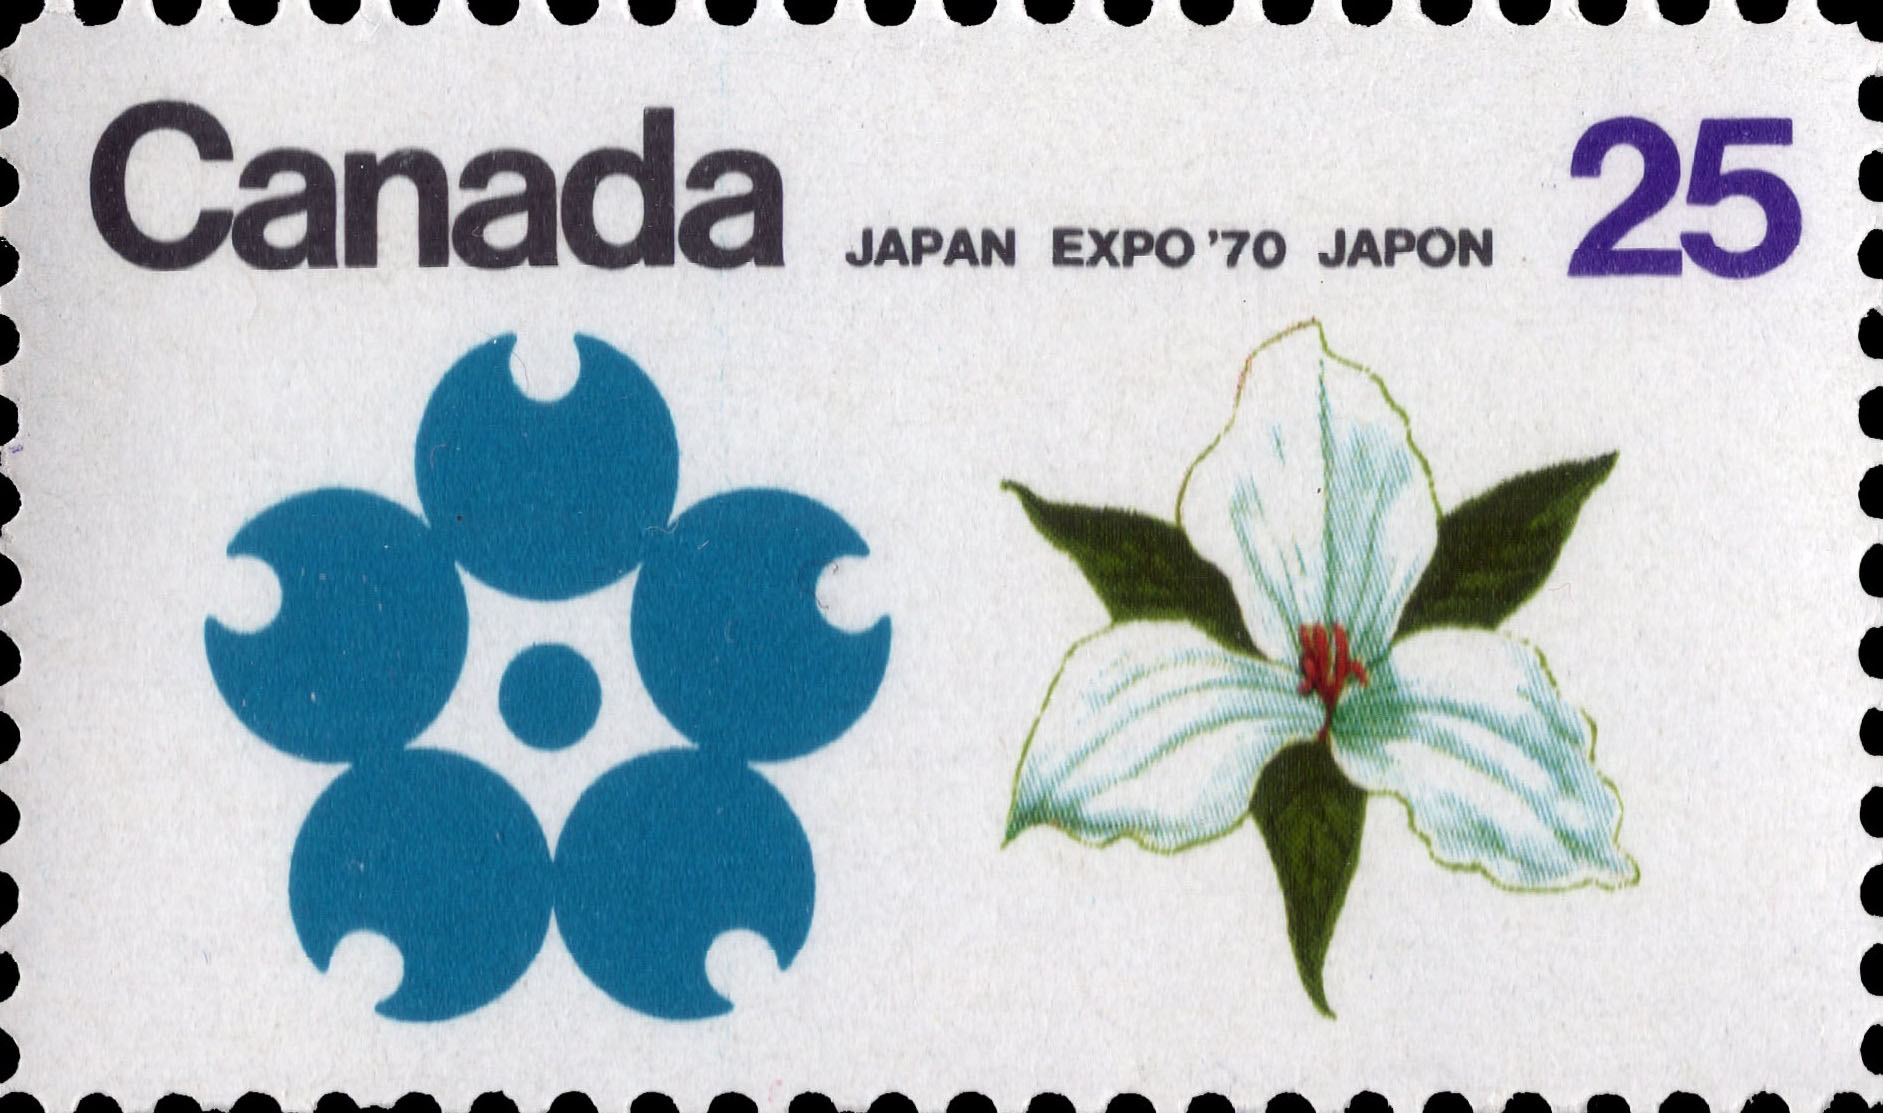 Ontario Canada Postage Stamp | Japan Expo '70